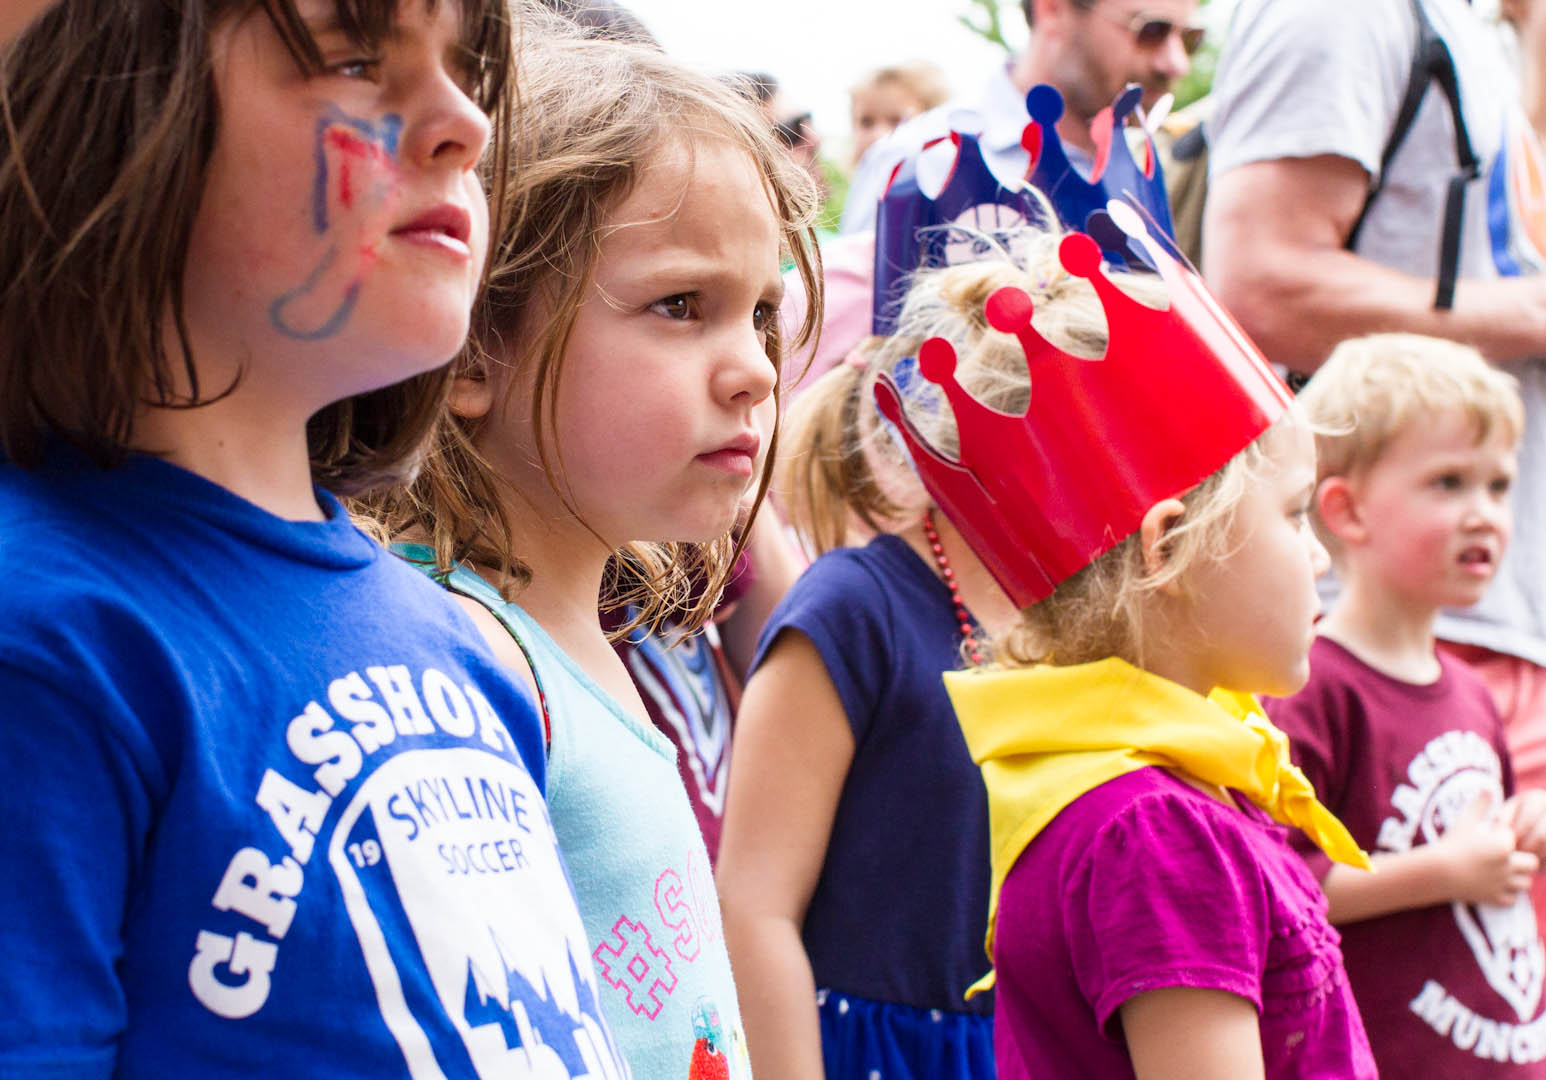 Children can't take their eyes off The Dylan Miles Experience at the Highlands Street Fair